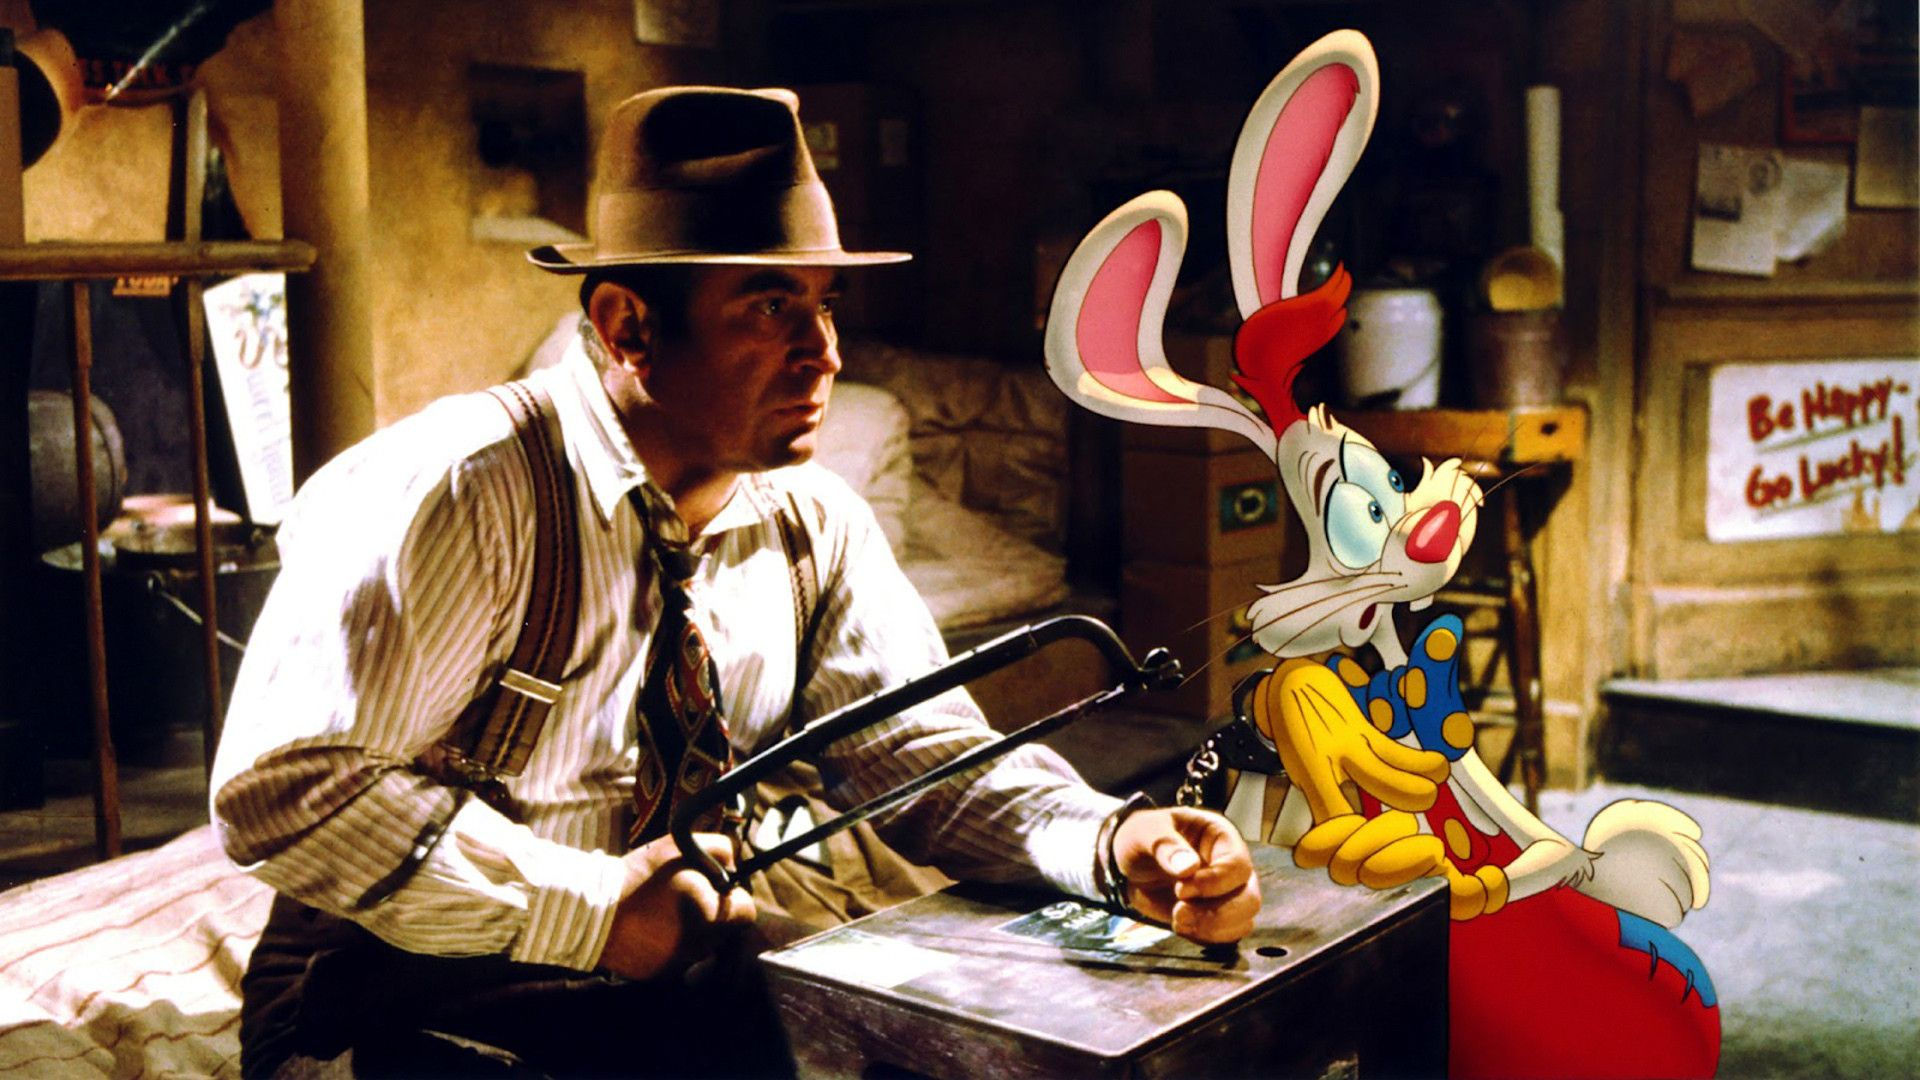 who framed roger rabbit? images Who Framed Roger Rabbit? HD ...